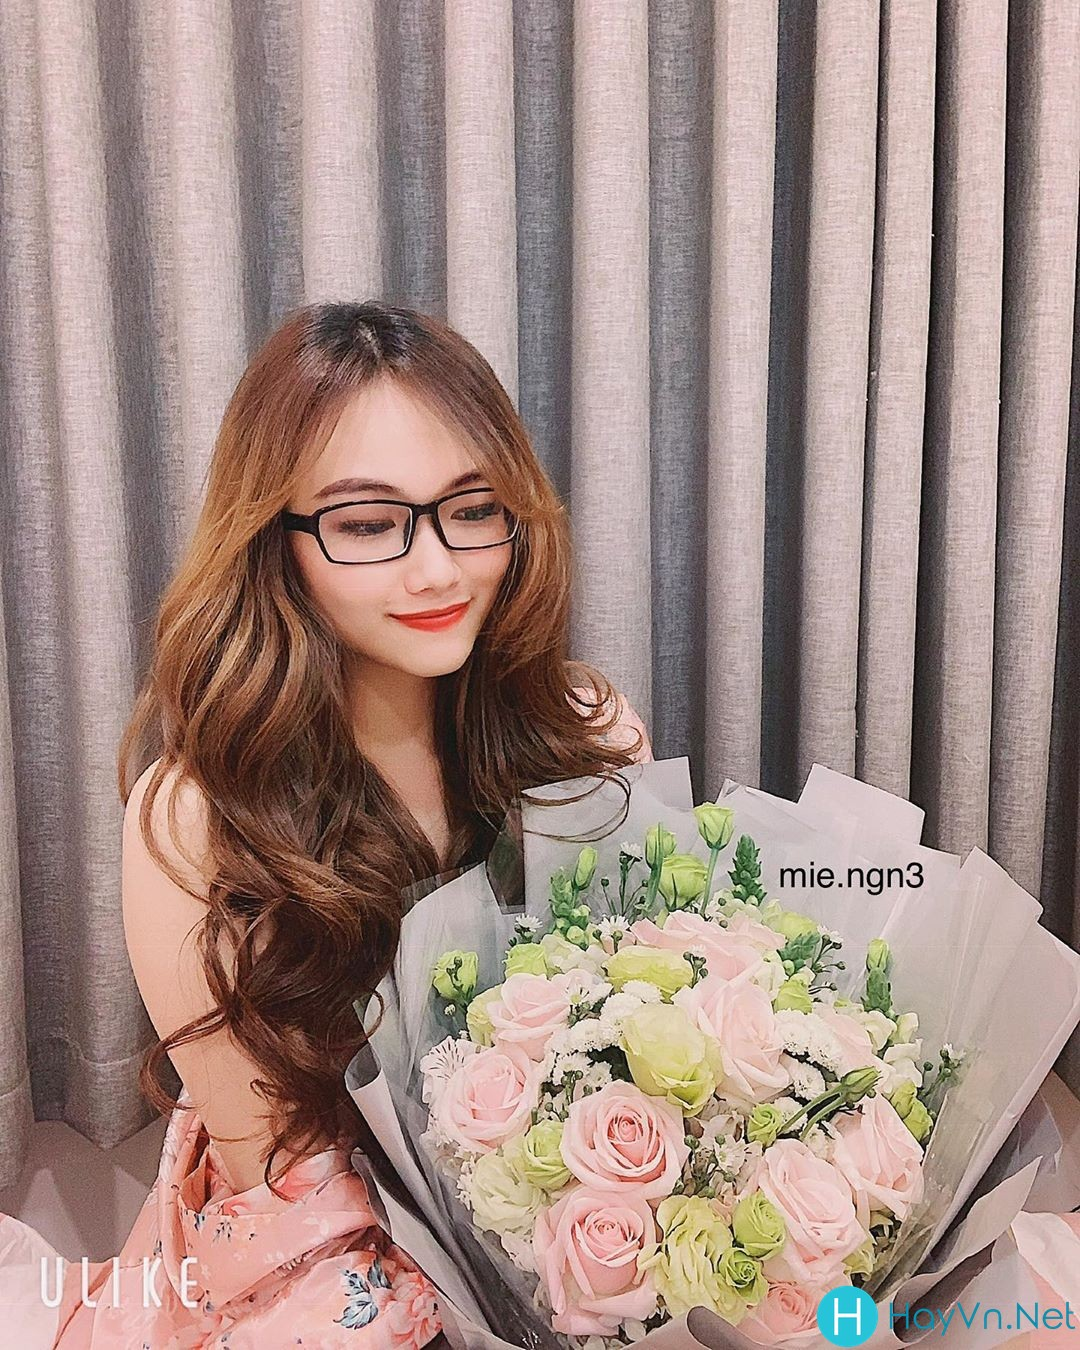 Model Mie Nguyễn | E-CUP